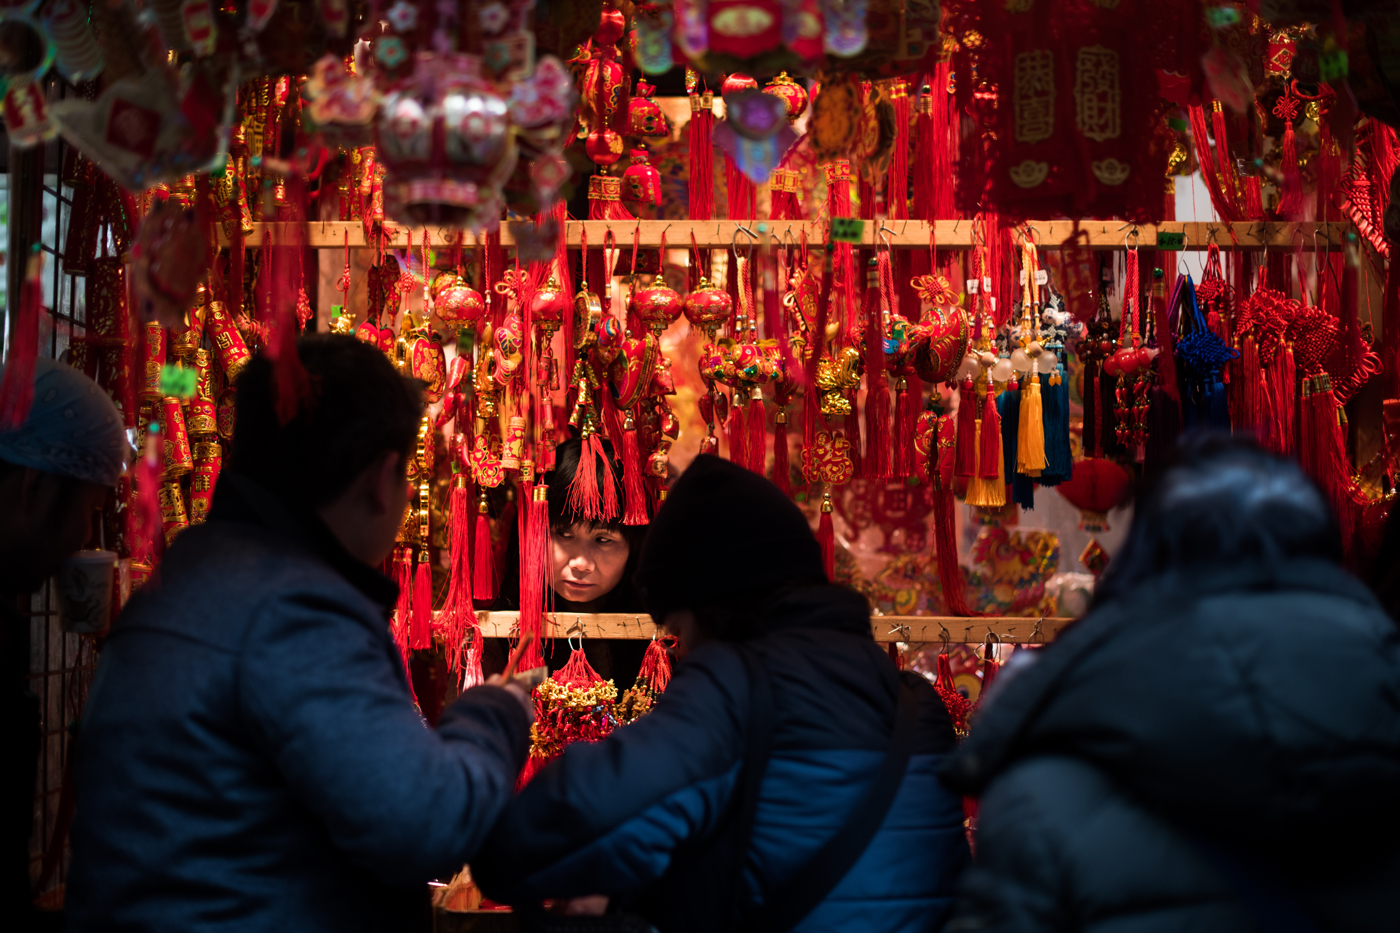 A woman sells items in preparation for Chinese New Year in the Chinatown neighborhood of Manhattan in New York, NY.